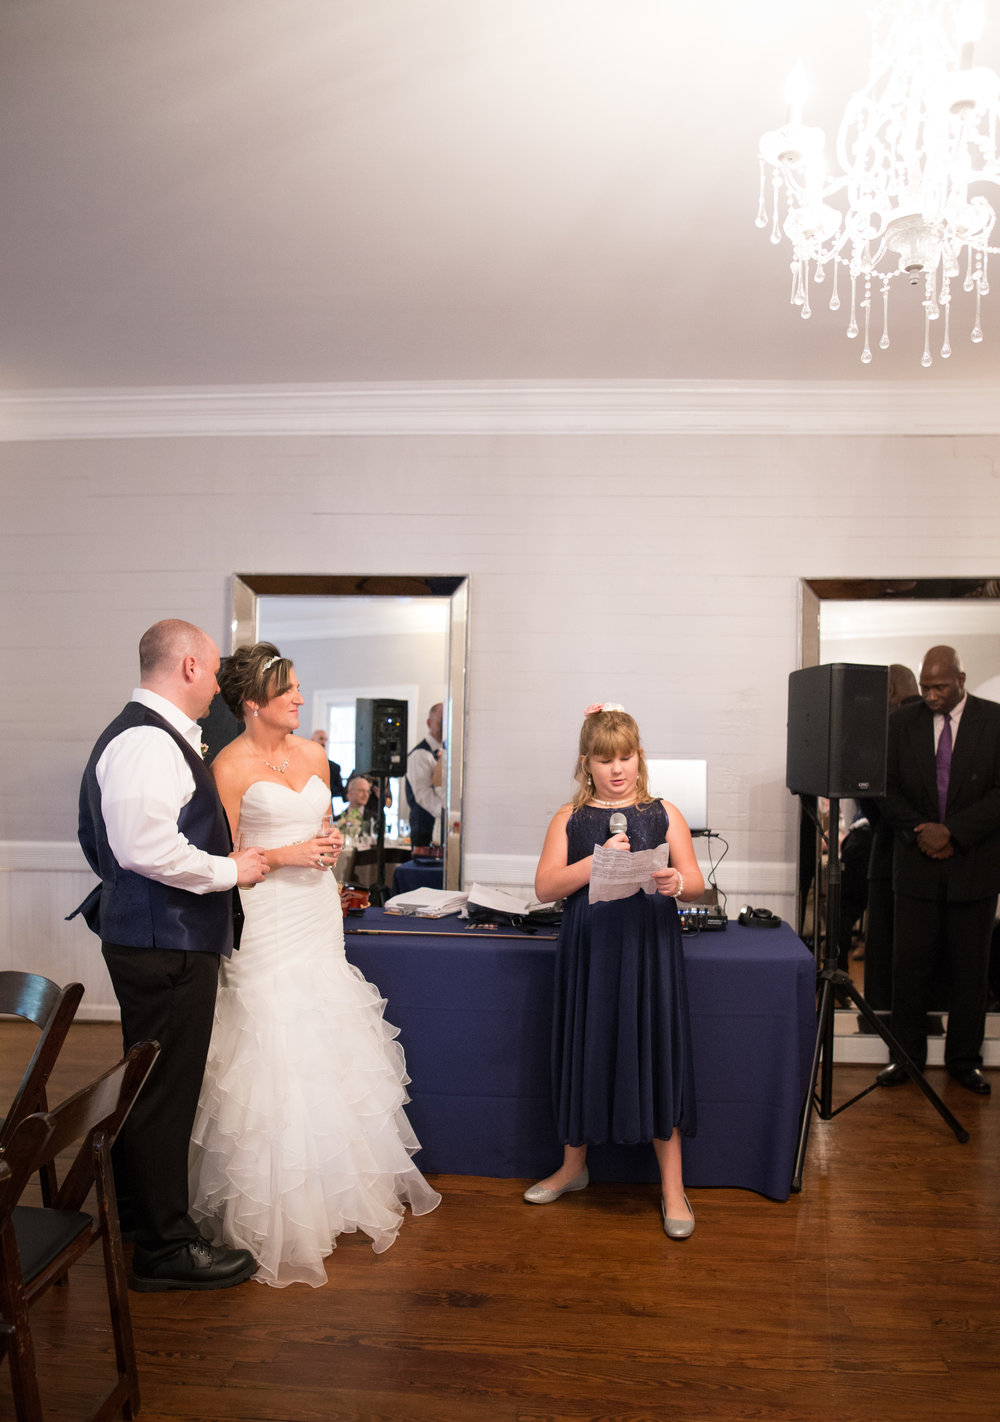 Nine19 Photography Mad Dash Weddings Raleigh NC Wedding Photographer-8237.jpg